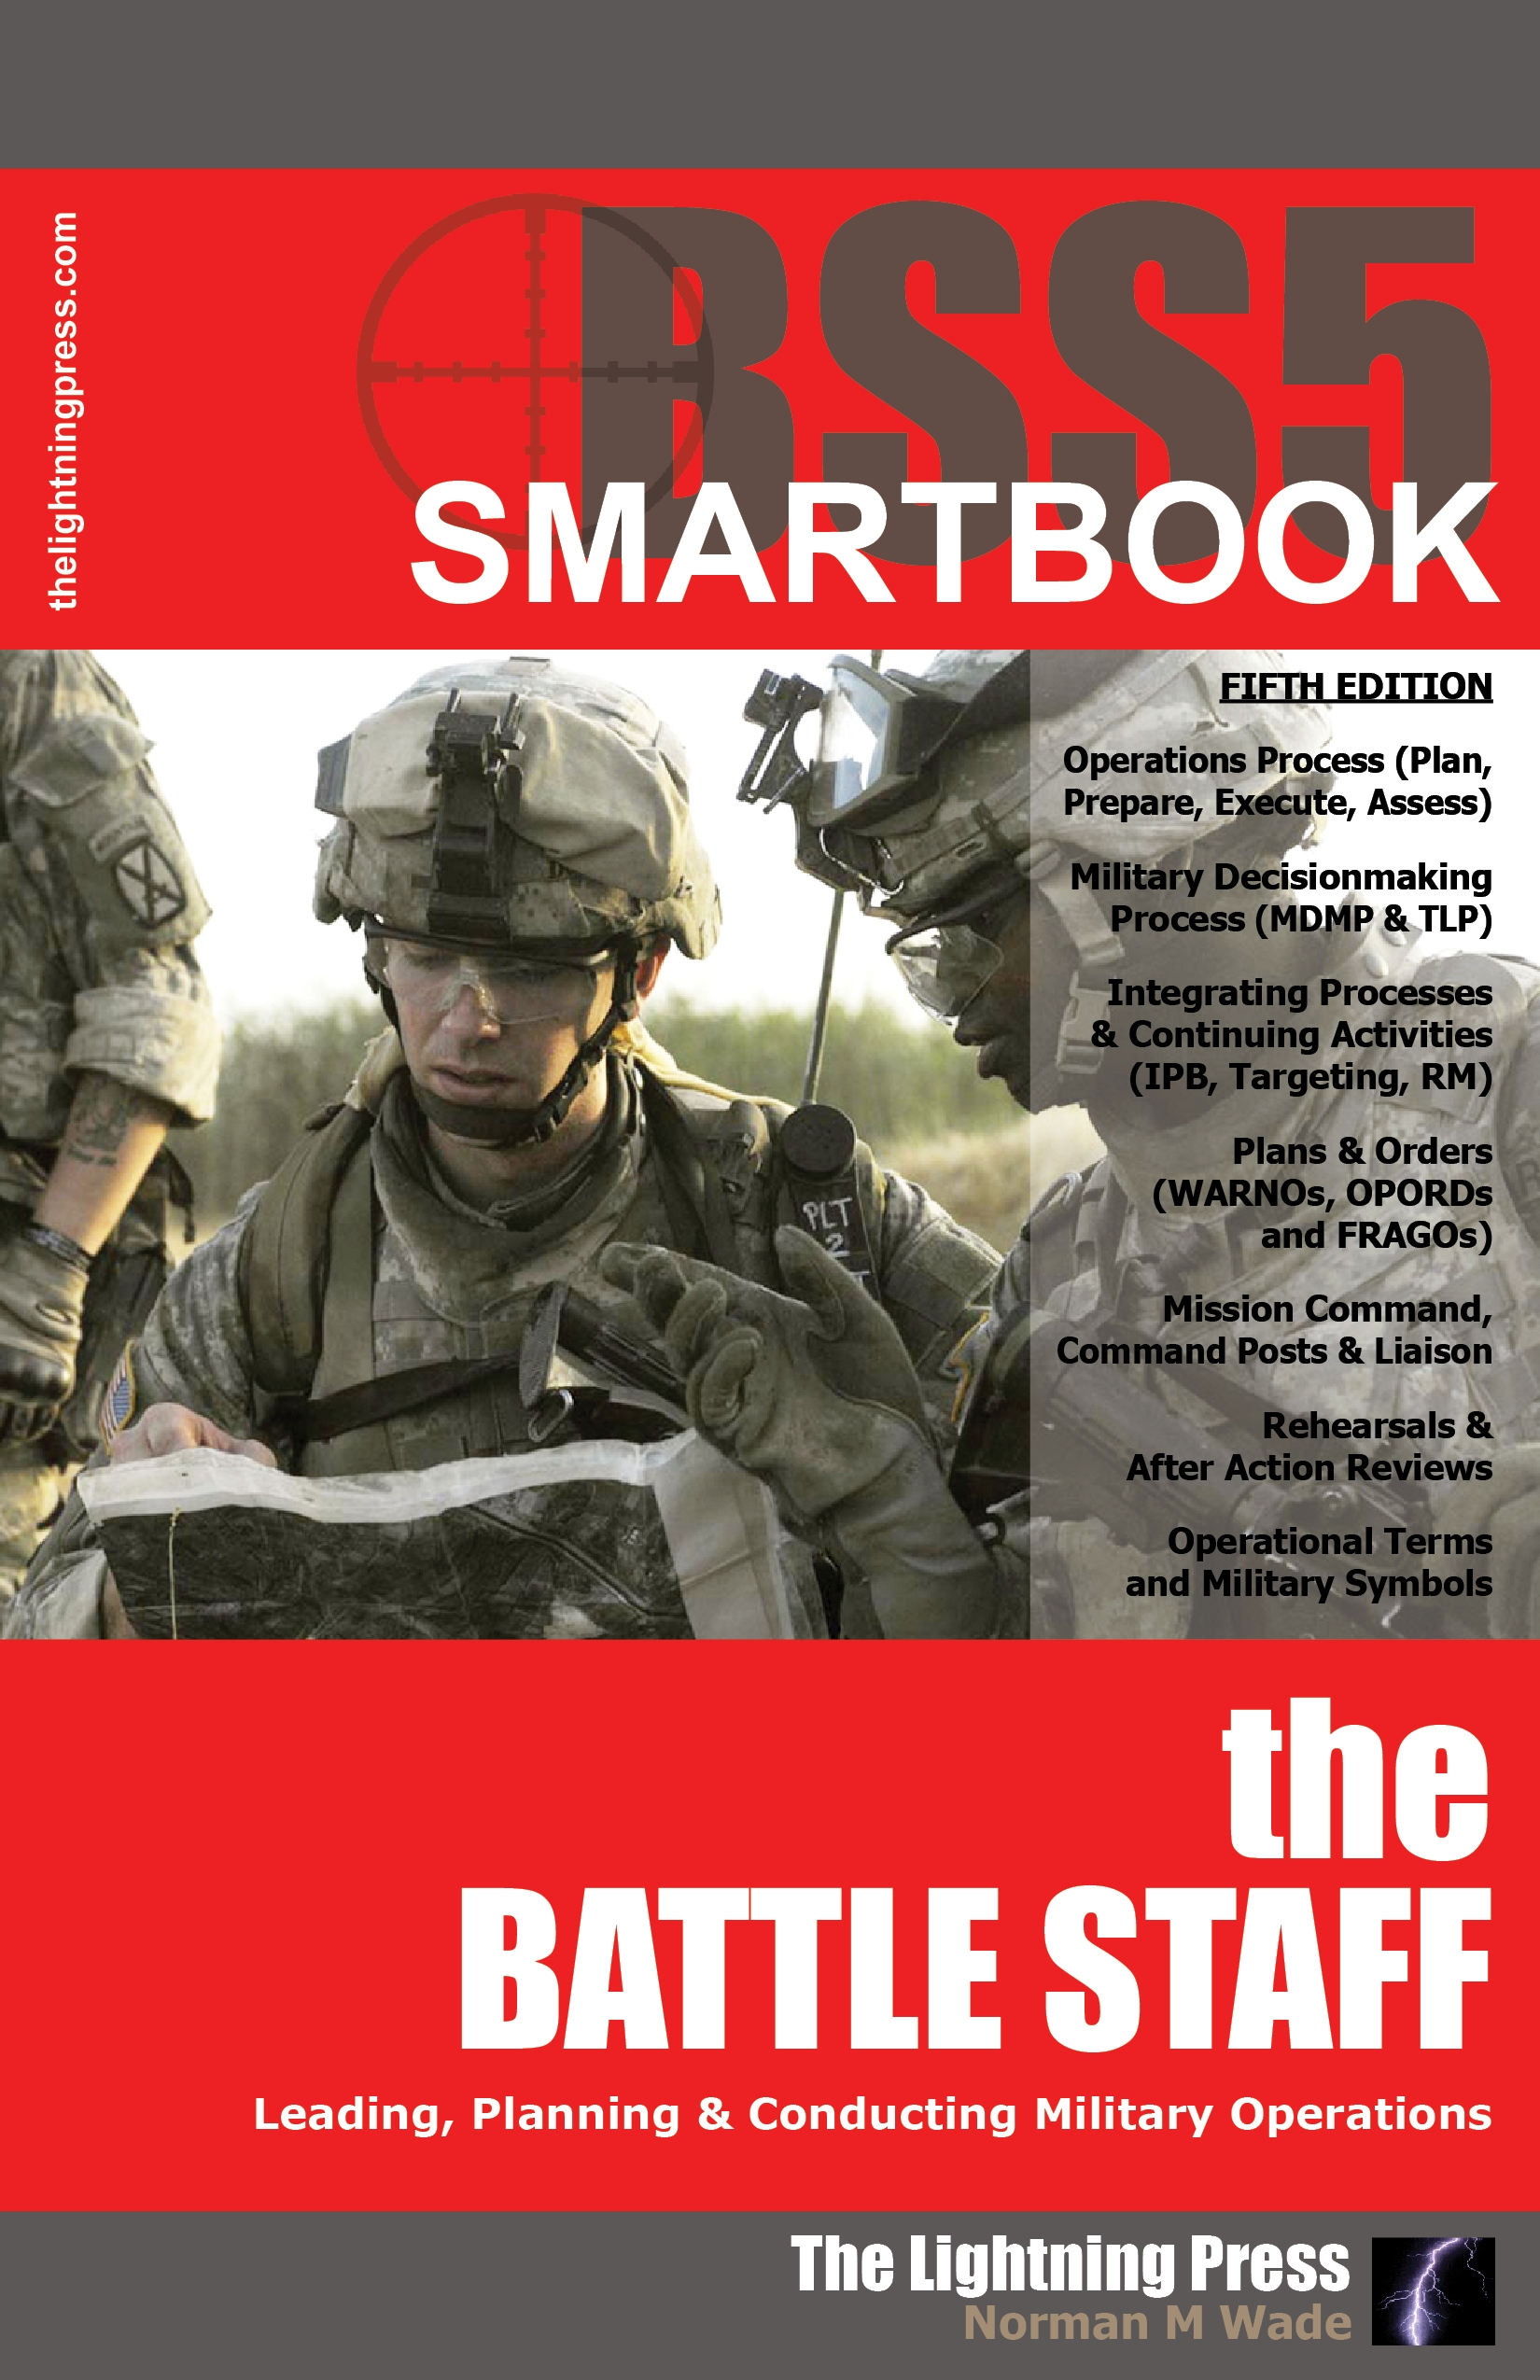 army battle roster template - army battle staff smartbook pdf bing images